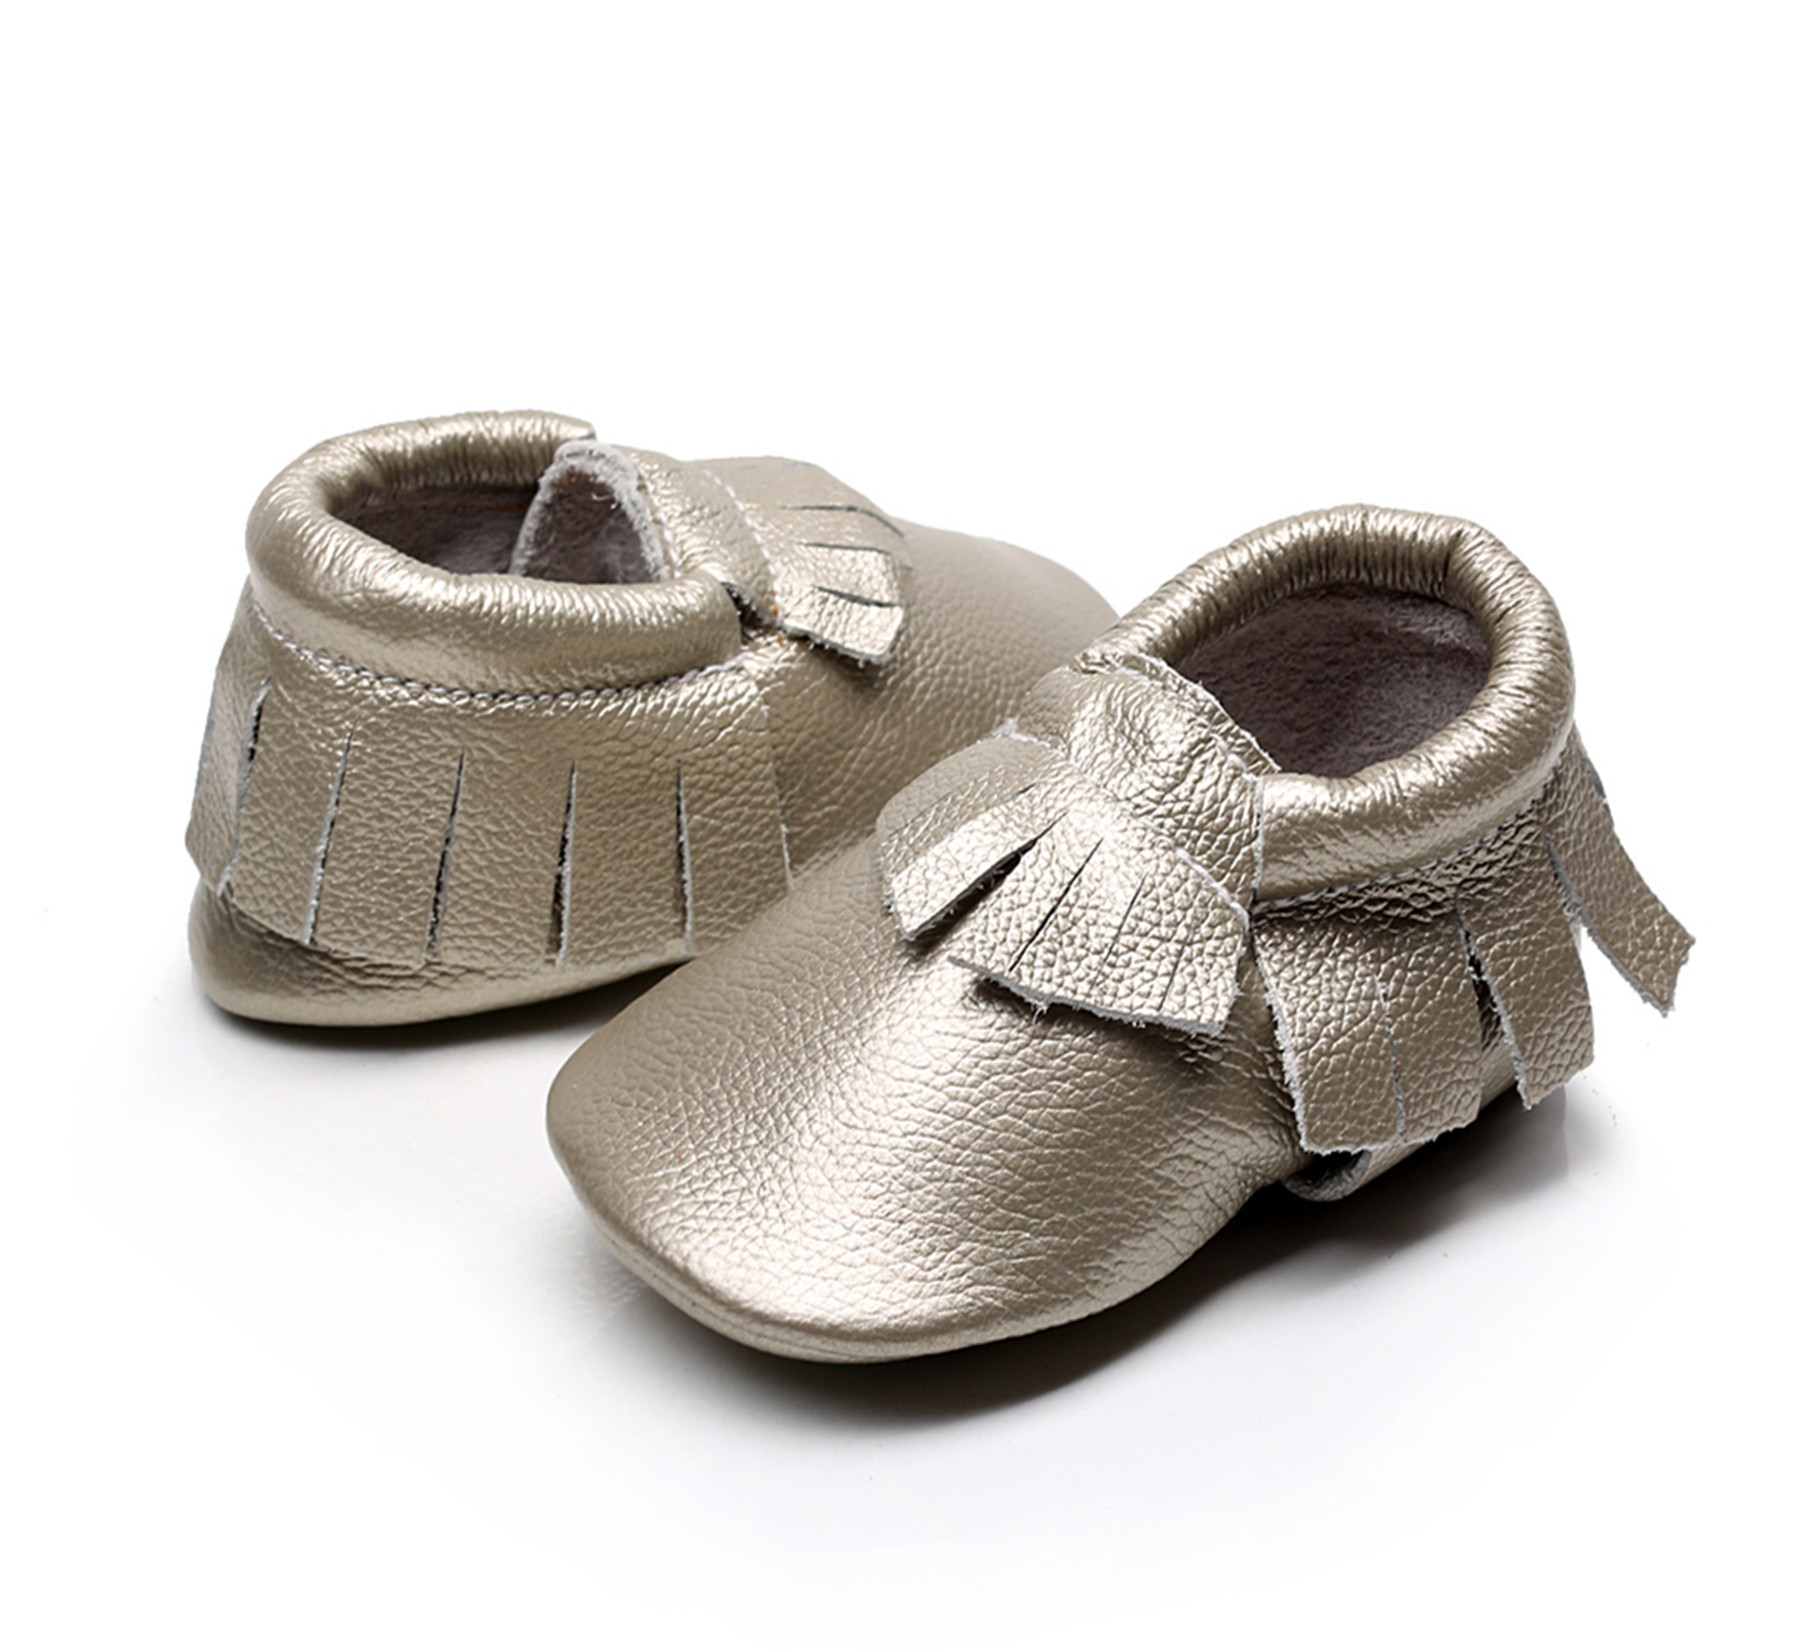 Baby First Walkers Genuine Leather Soft Bottom Fashion Tassels Baby Moccasin Newborn Babies Shoes